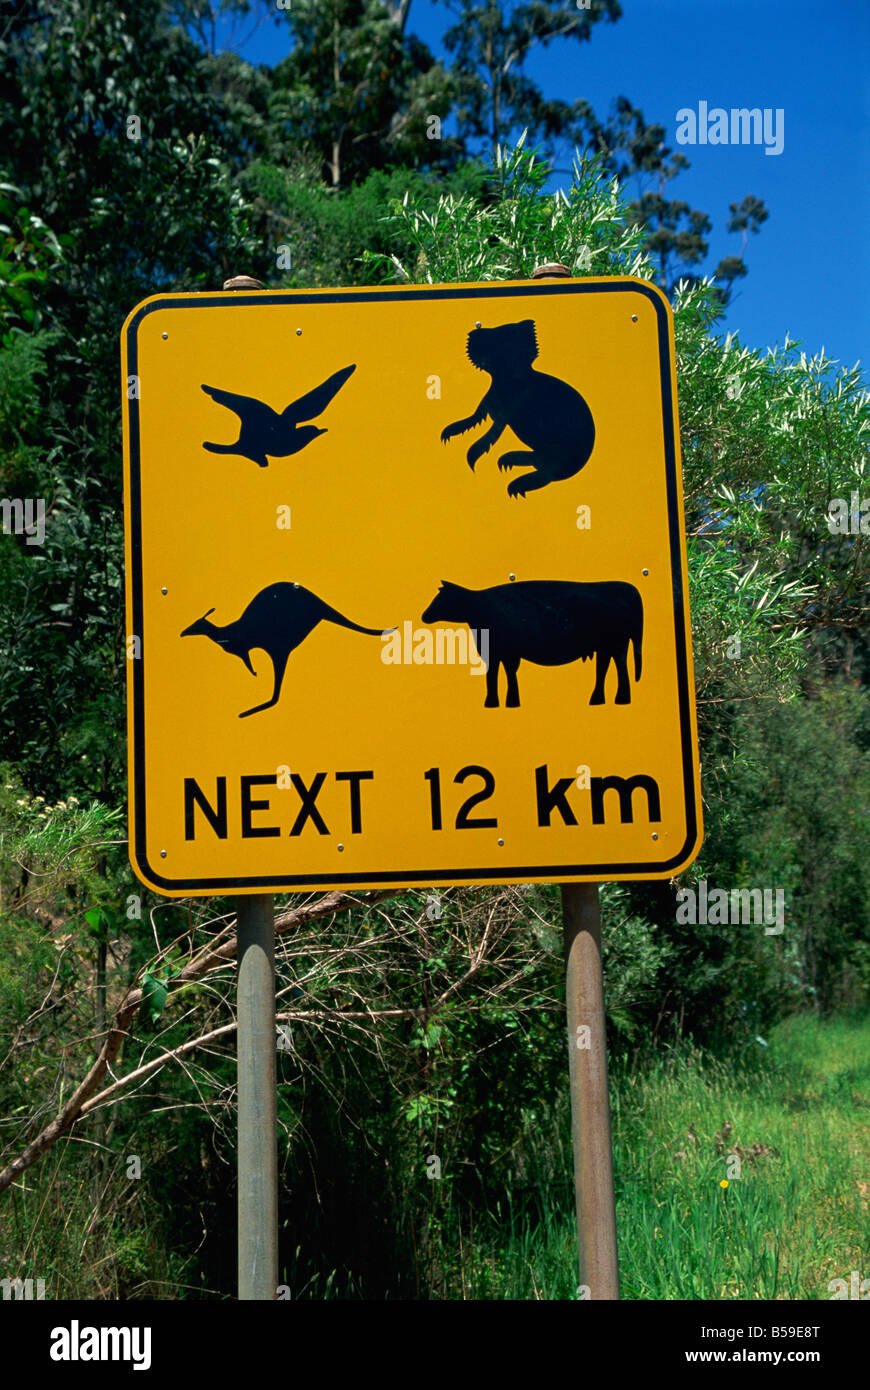 Typical traffic sign, Australia, Pacific - Stock Image